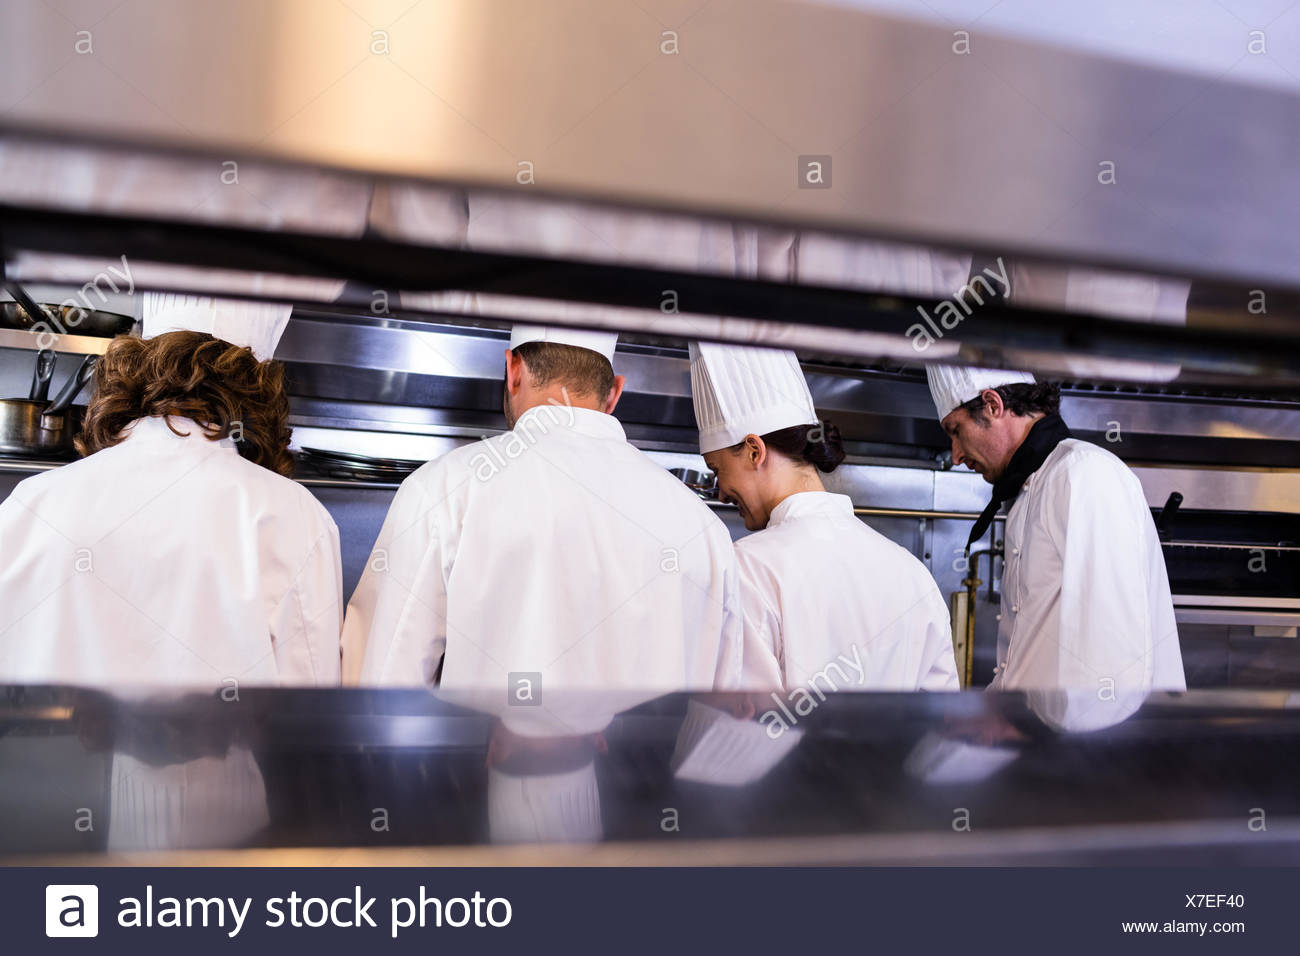 Group of chefs in white uniform busy to preparing food - Stock Image